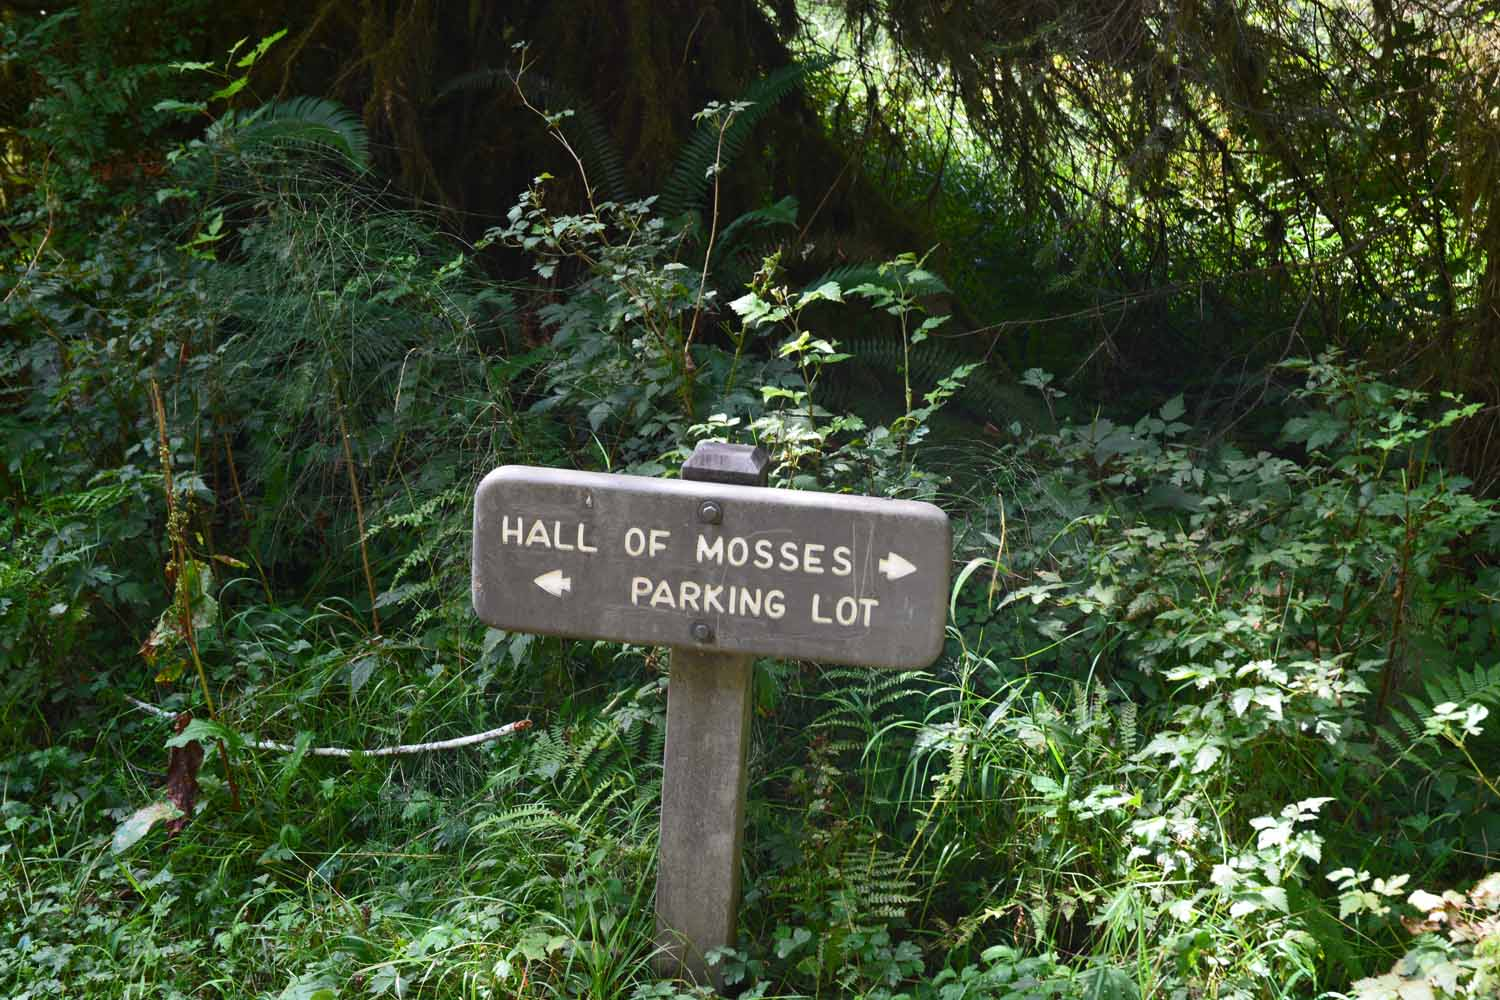 This sign tells one a lot about what to expect on this hike.